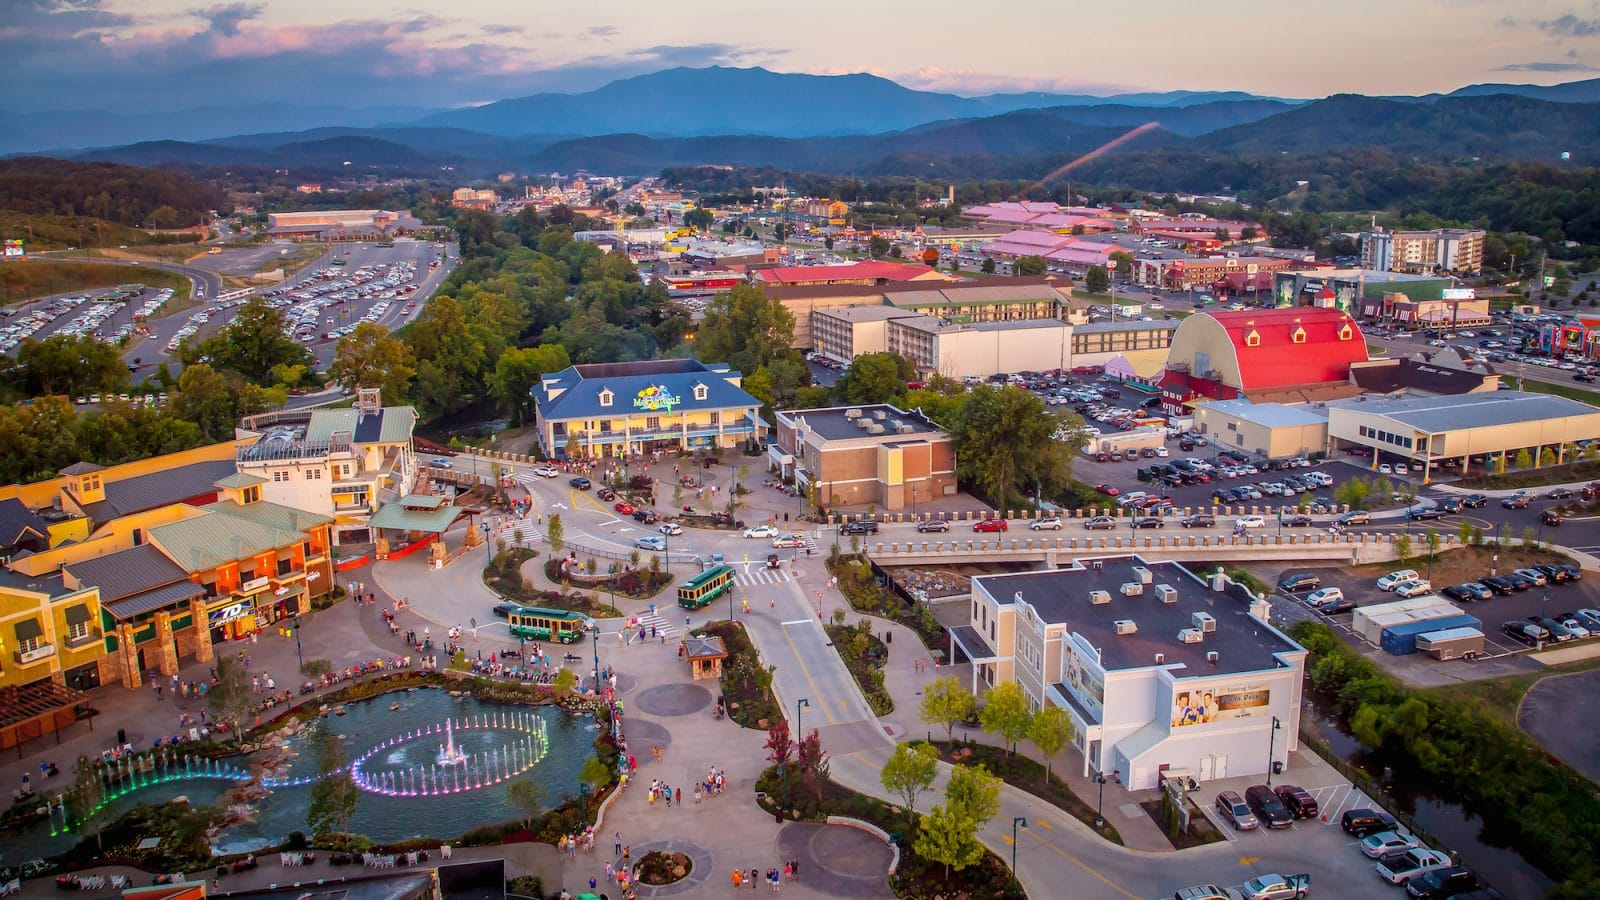 Temperature In Pigeon Forge Tennessee >> 6 Things You Didn T Know About Pigeon Forge Tn